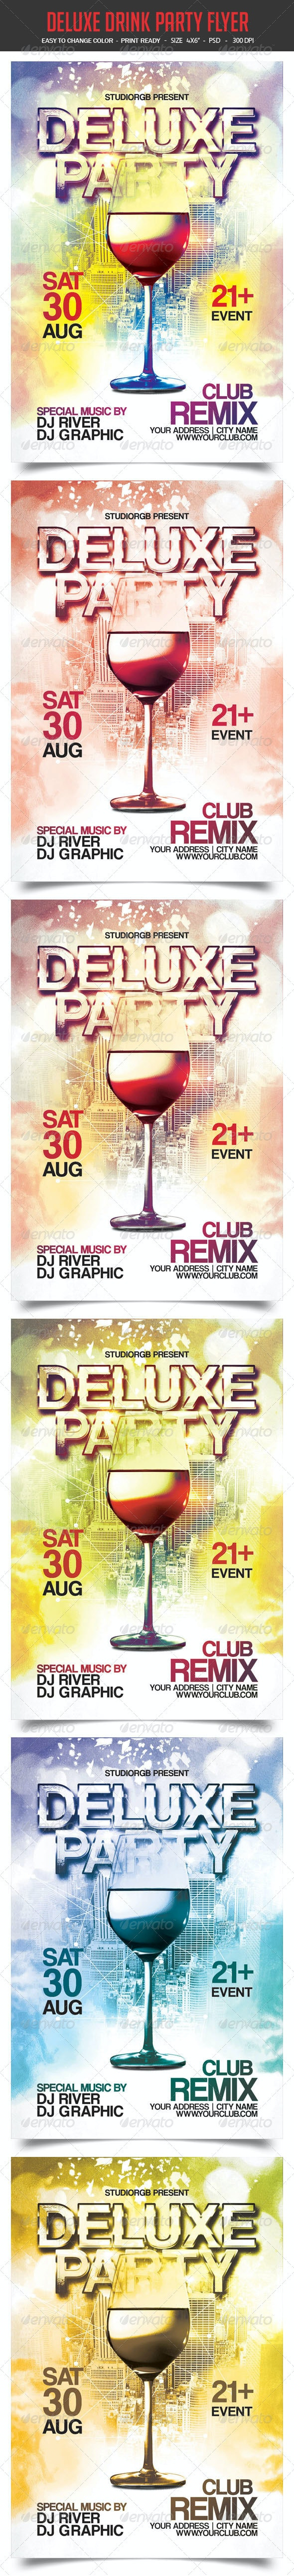 Deluxe Drink Party Flyer - Clubs & Parties Events